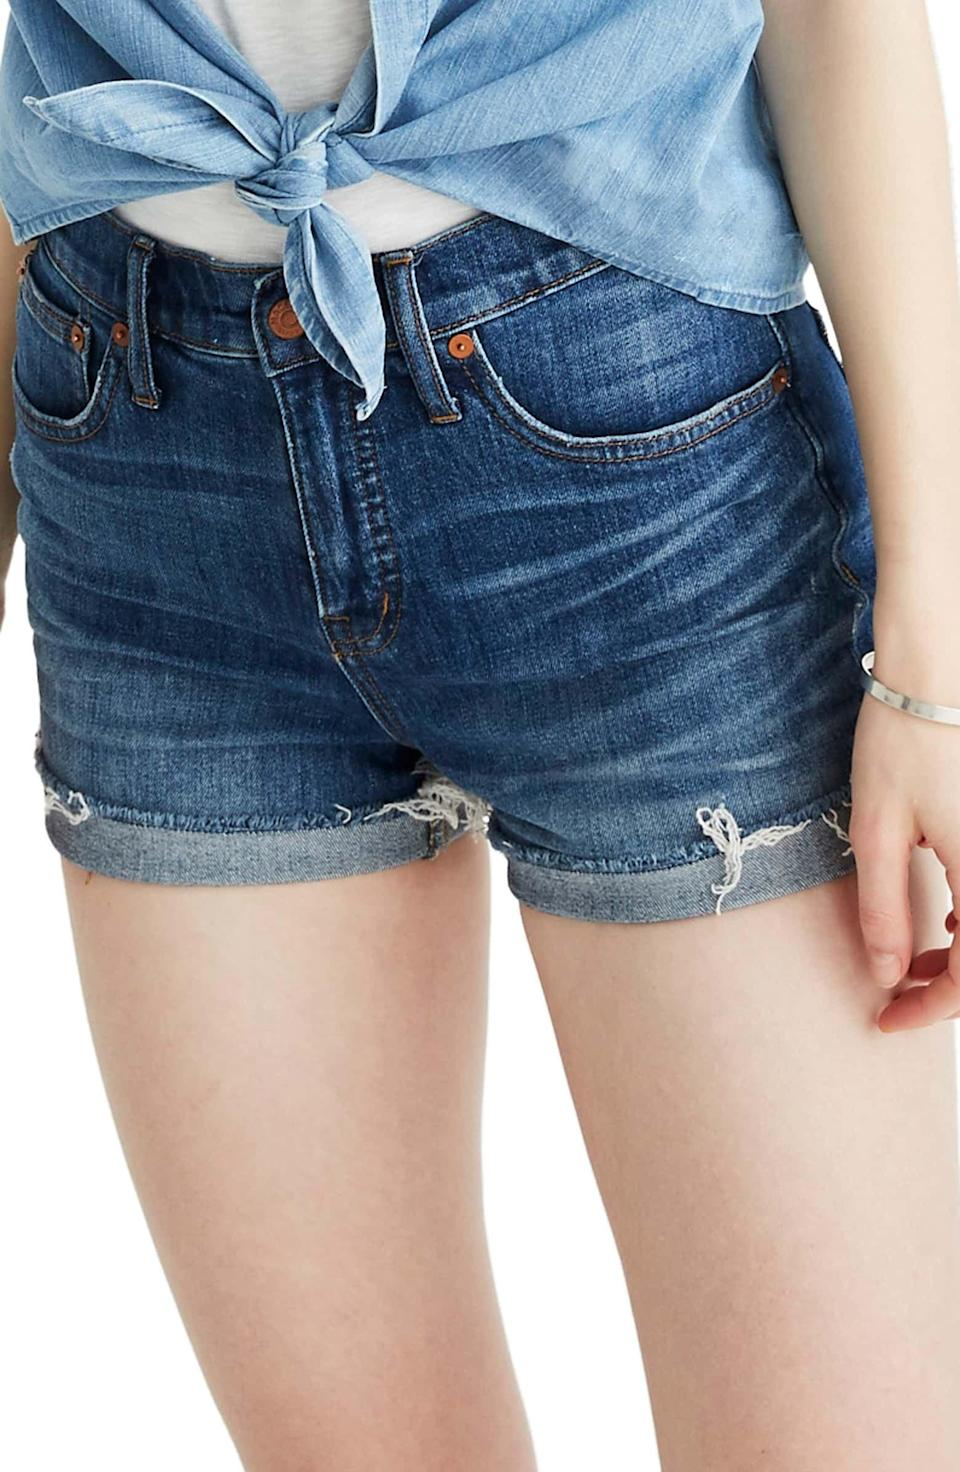 "<p>It doesn't get more iconic than these <a href=""https://www.popsugar.com/buy/Madewell-High-Rise-Cuffed-Denim-Shorts-430428?p_name=Madewell%20High%20Rise%20Cuffed%20Denim%20Shorts&retailer=shop.nordstrom.com&pid=430428&price=70&evar1=fab%3Aus&evar9=45988379&evar98=https%3A%2F%2Fwww.popsugar.com%2Ffashion%2Fphoto-gallery%2F45988379%2Fimage%2F45988392%2FMadewell-High-Rise-Cuffed-Denim-Shorts&list1=shopping%2Cdenim%2Cshorts%2Csummer%2Cdenim%20shorts%2Csummer%20fashion&prop13=mobile&pdata=1"" class=""link rapid-noclick-resp"" rel=""nofollow noopener"" target=""_blank"" data-ylk=""slk:Madewell High Rise Cuffed Denim Shorts"">Madewell High Rise Cuffed Denim Shorts</a> ($70).</p>"